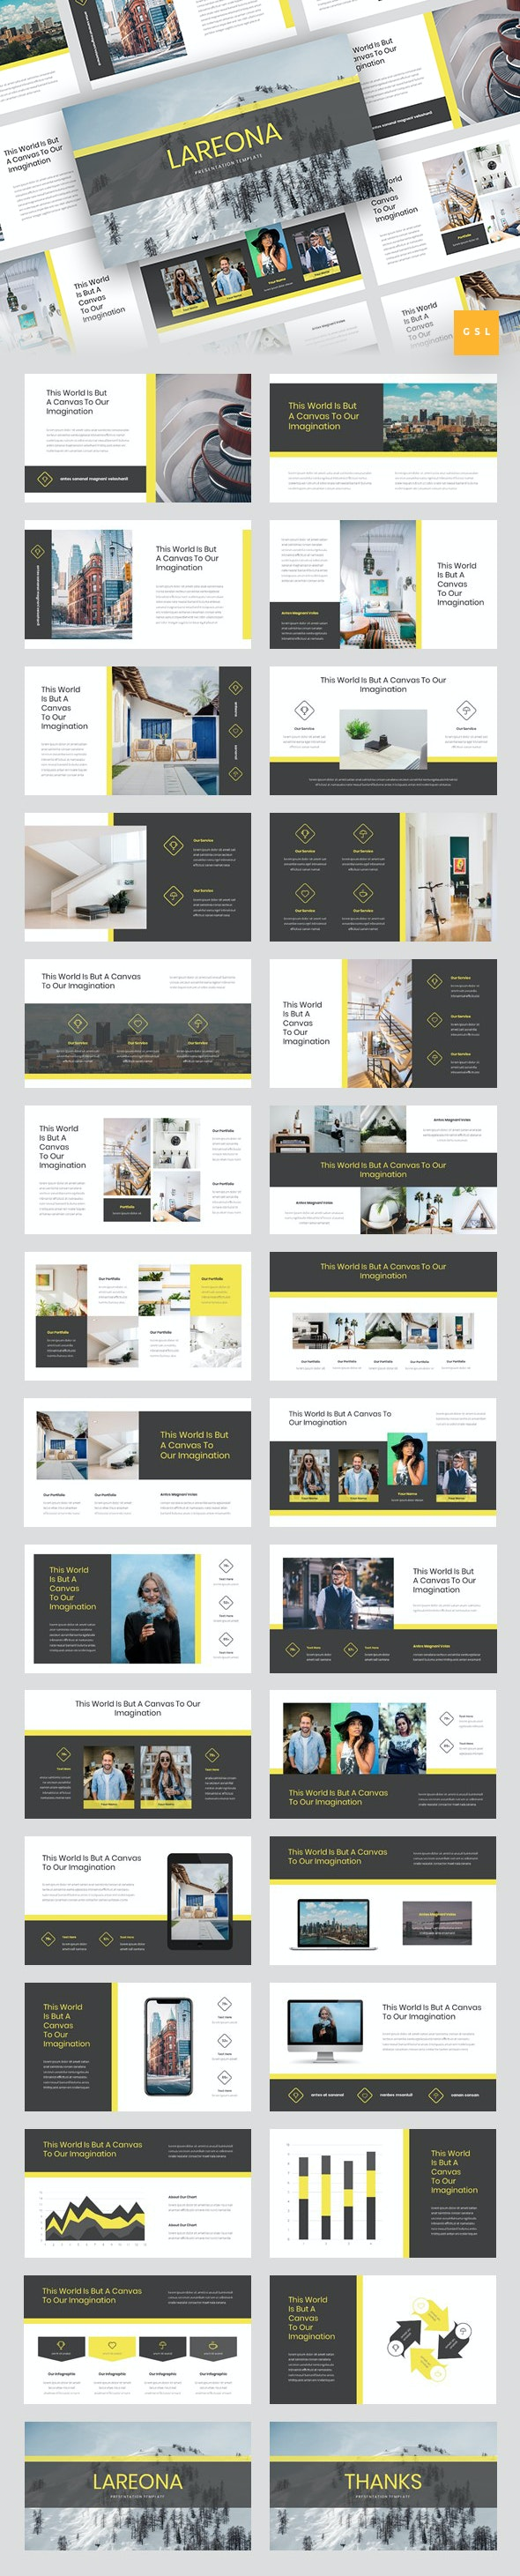 Lareona - Creative Google Slides Template - Google Slides Presentation Templates